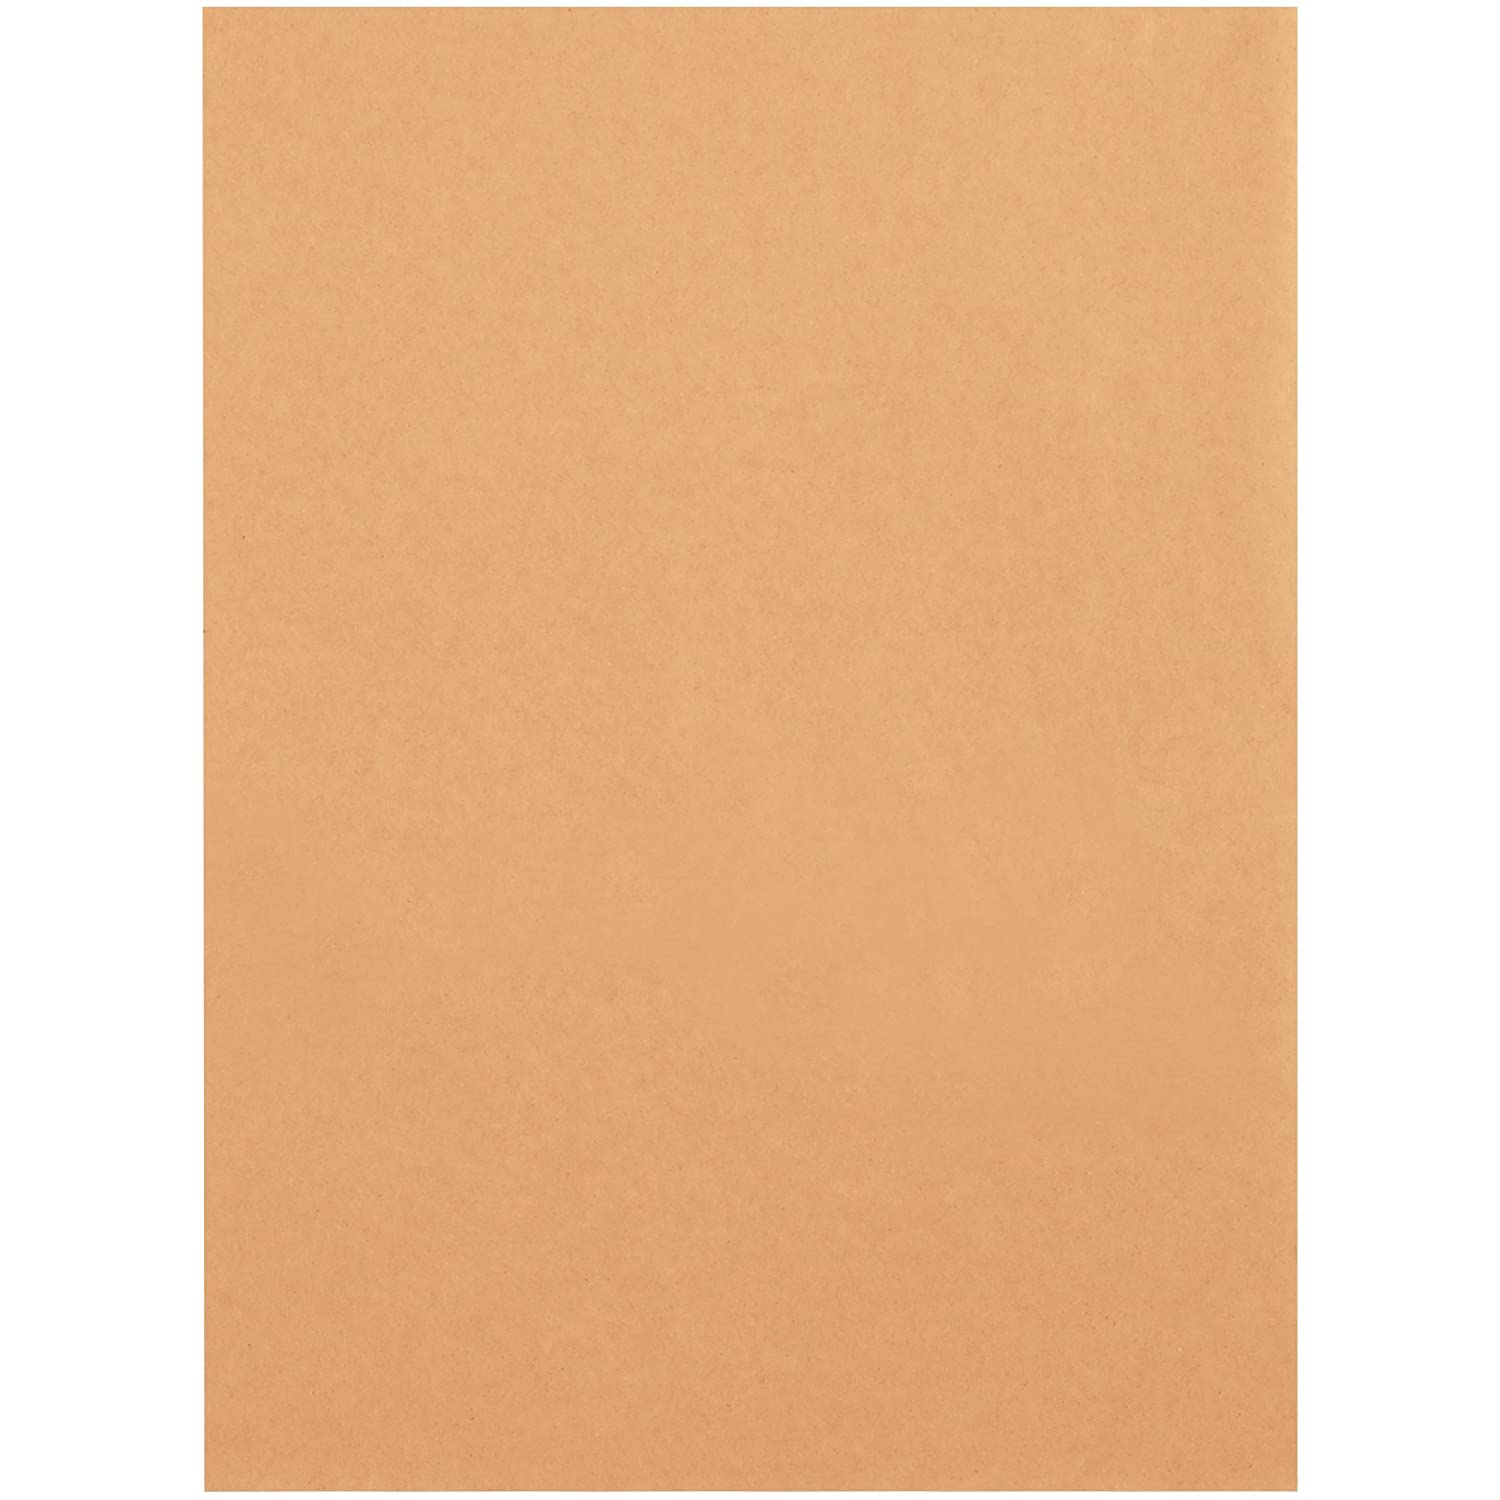 Max 51% OFF Ship Rapid rise Now Supply SNKPS182440 Paper Sheet x 40# 24